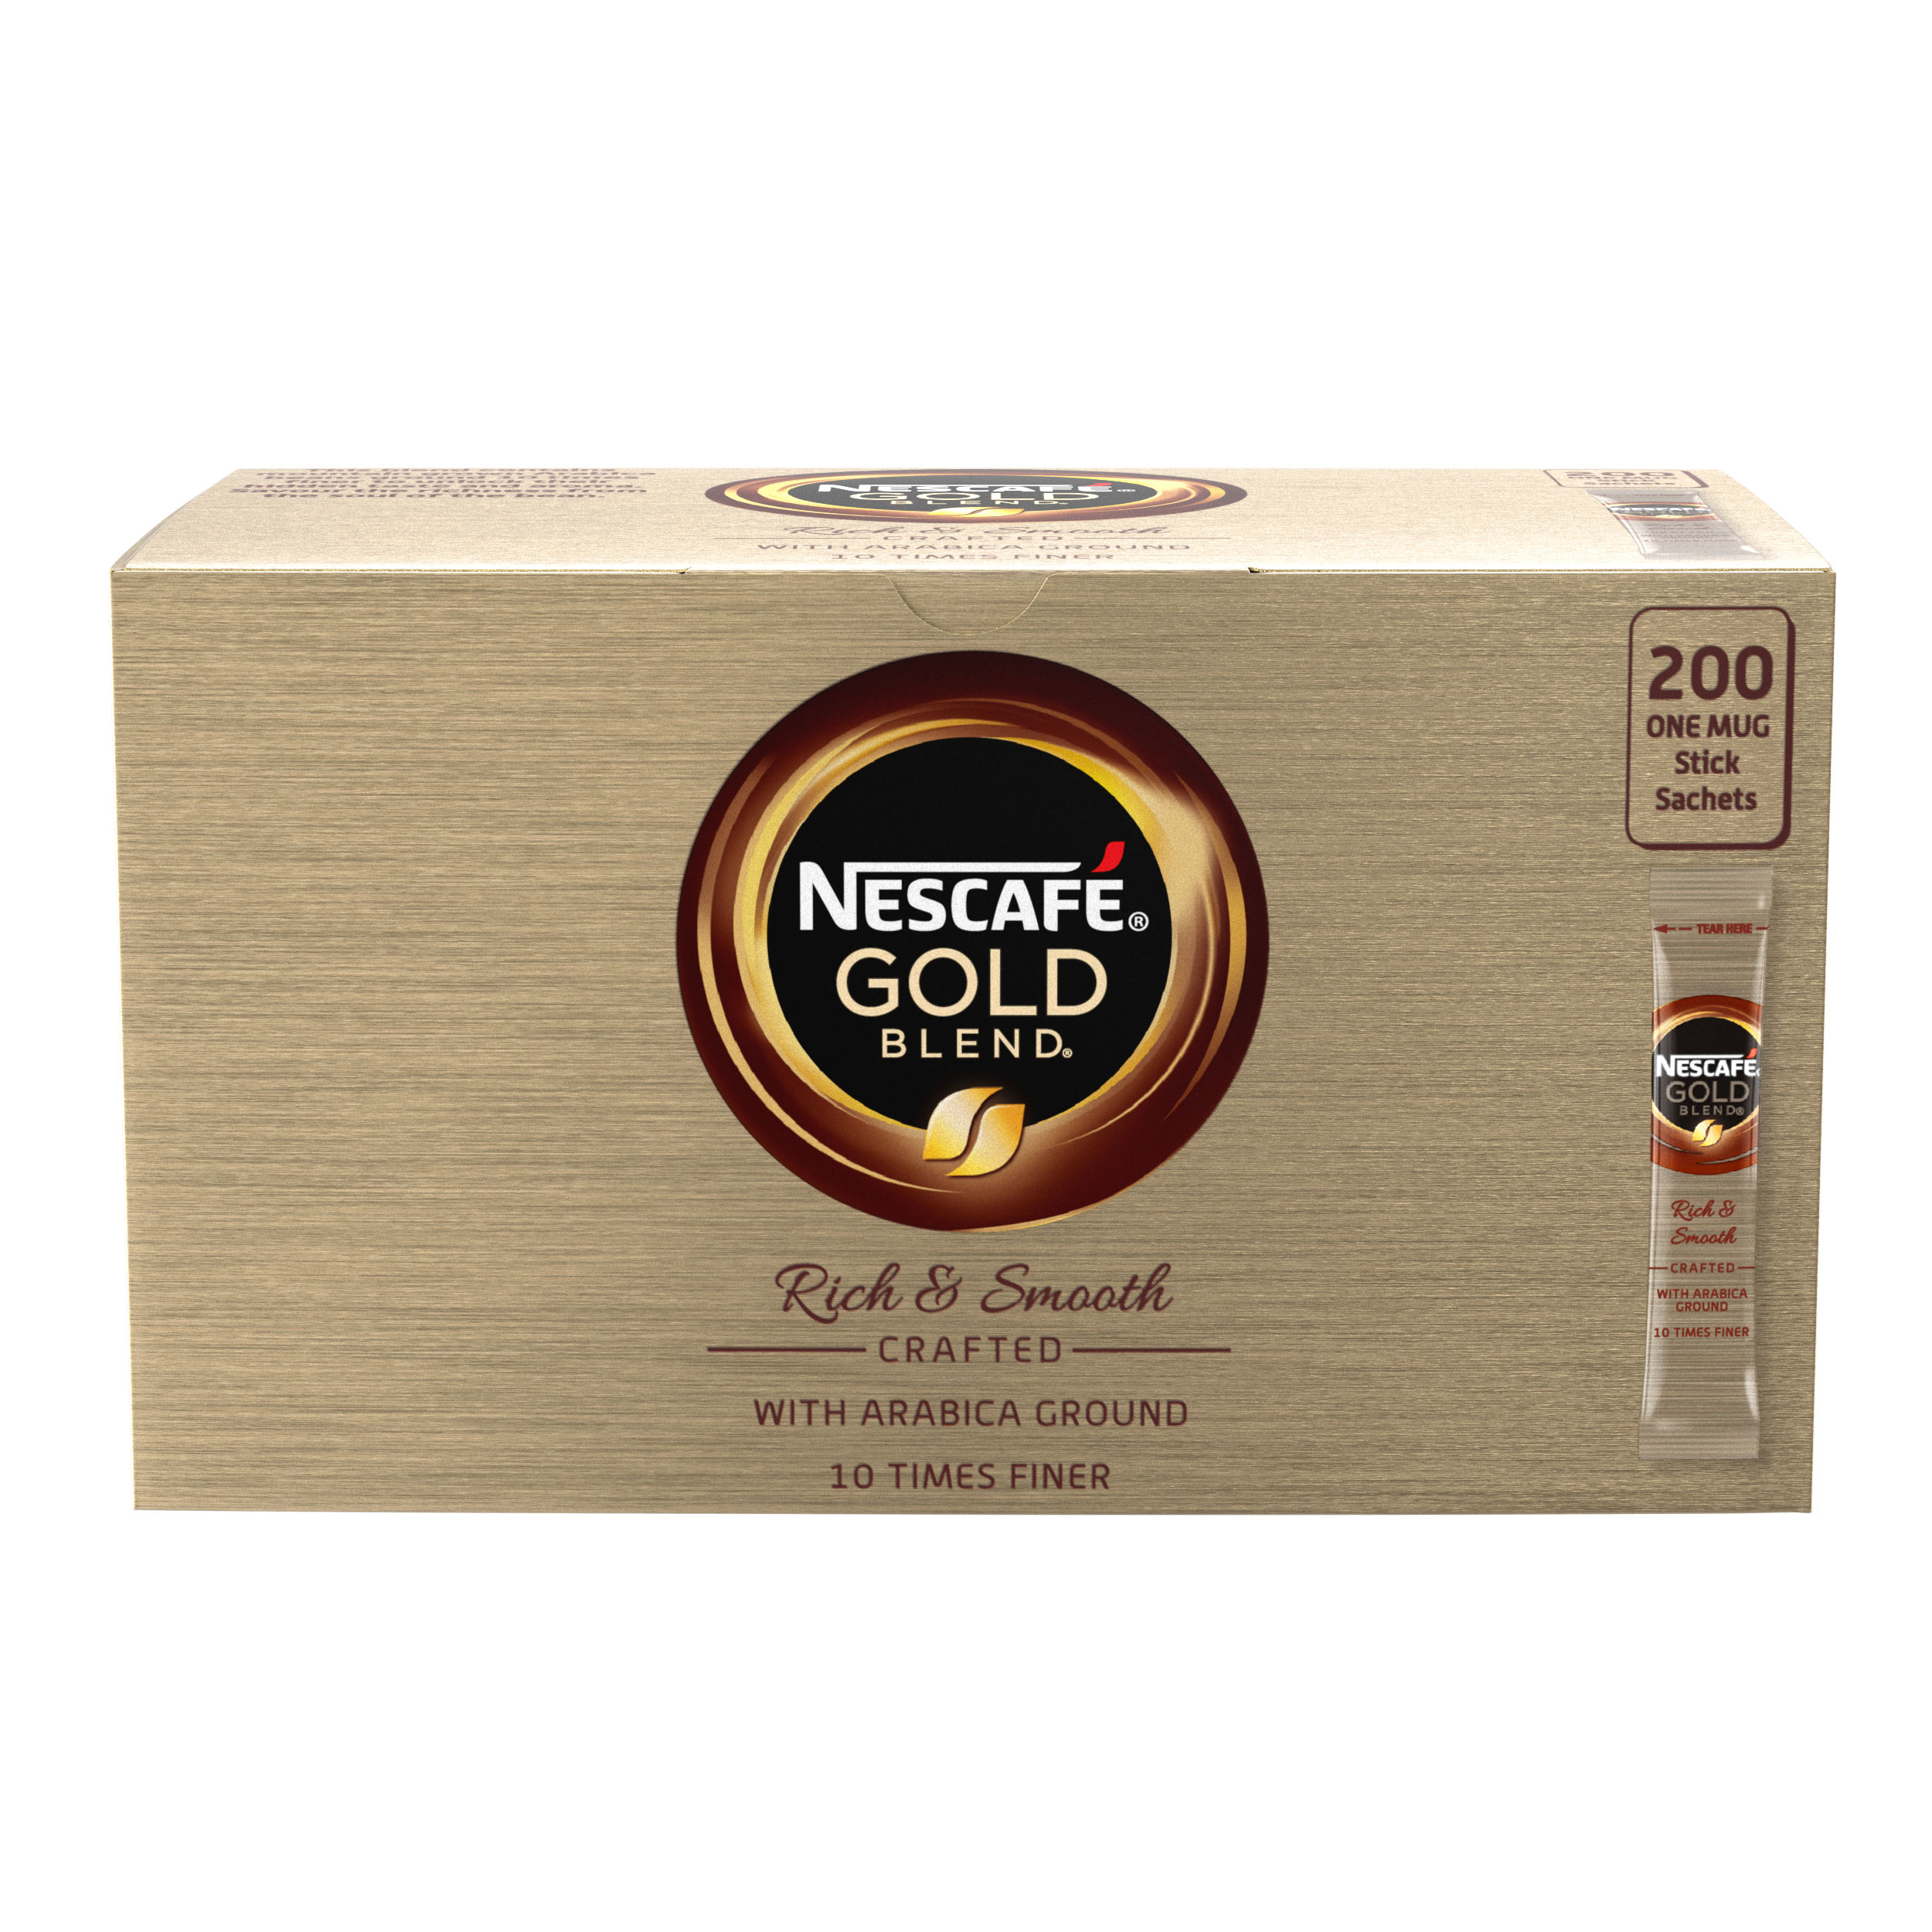 Nescafe Gold Blend Stick PK200